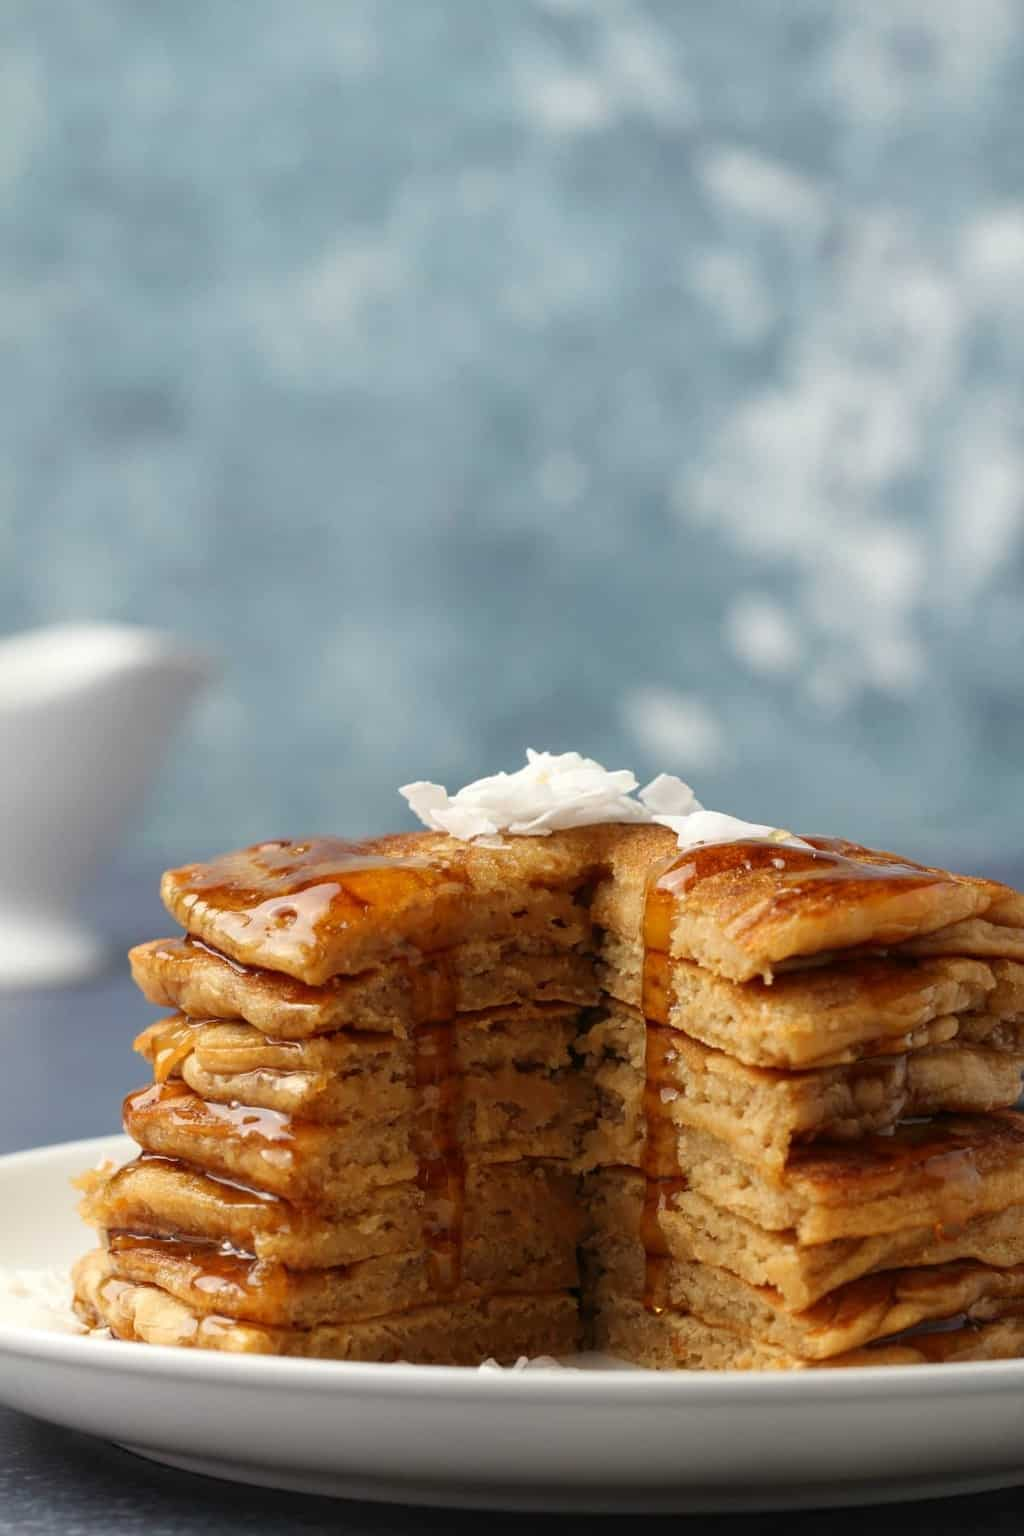 A stack of vegan coconut pancakes on a white plate.